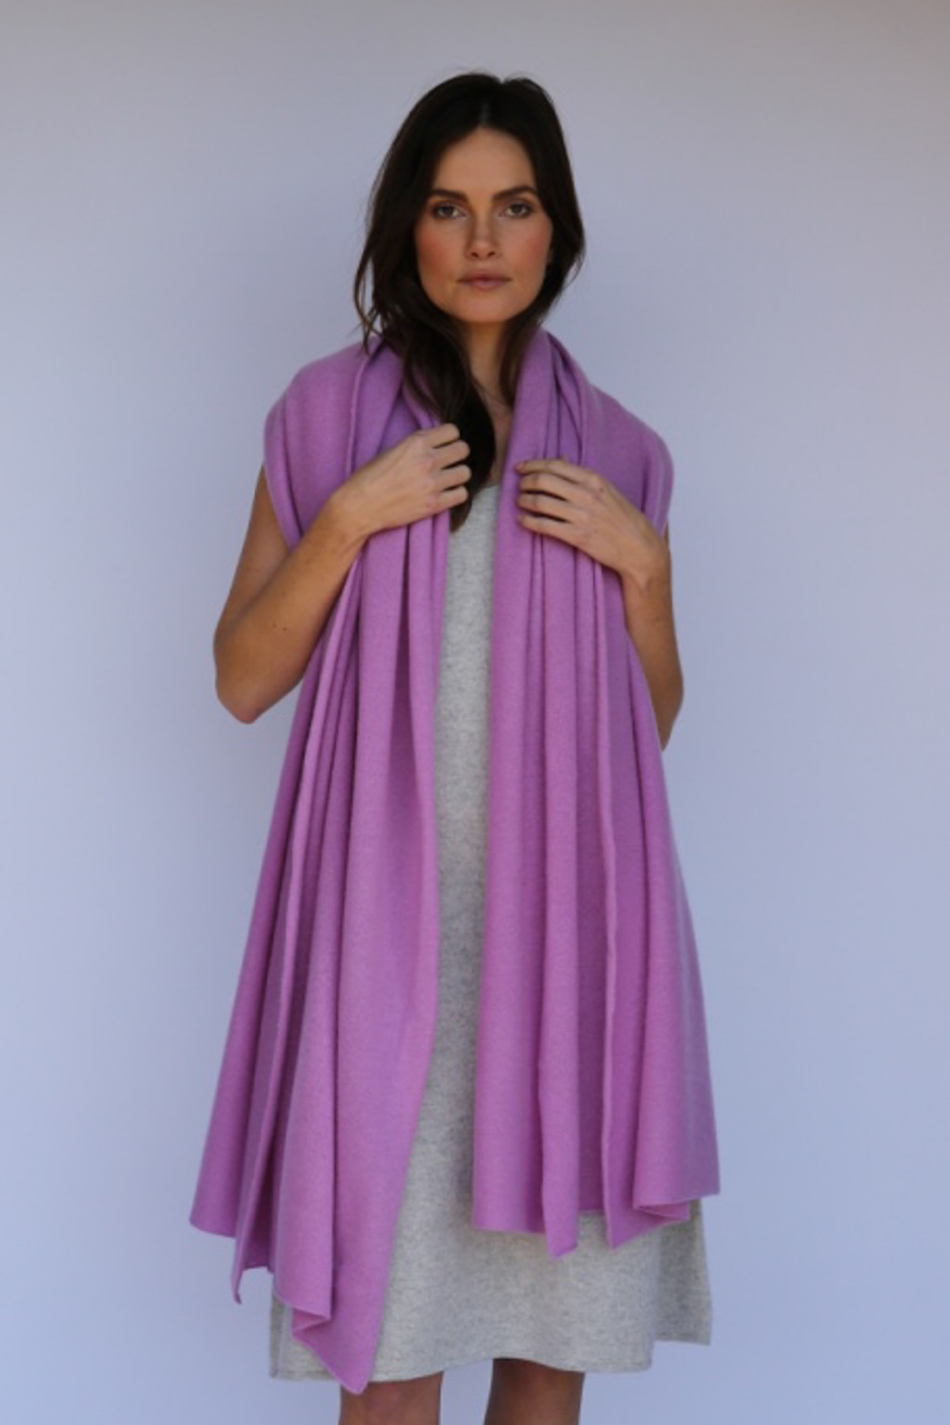 cashmere wraps, scarves, capes, and sweaters for every outfit.